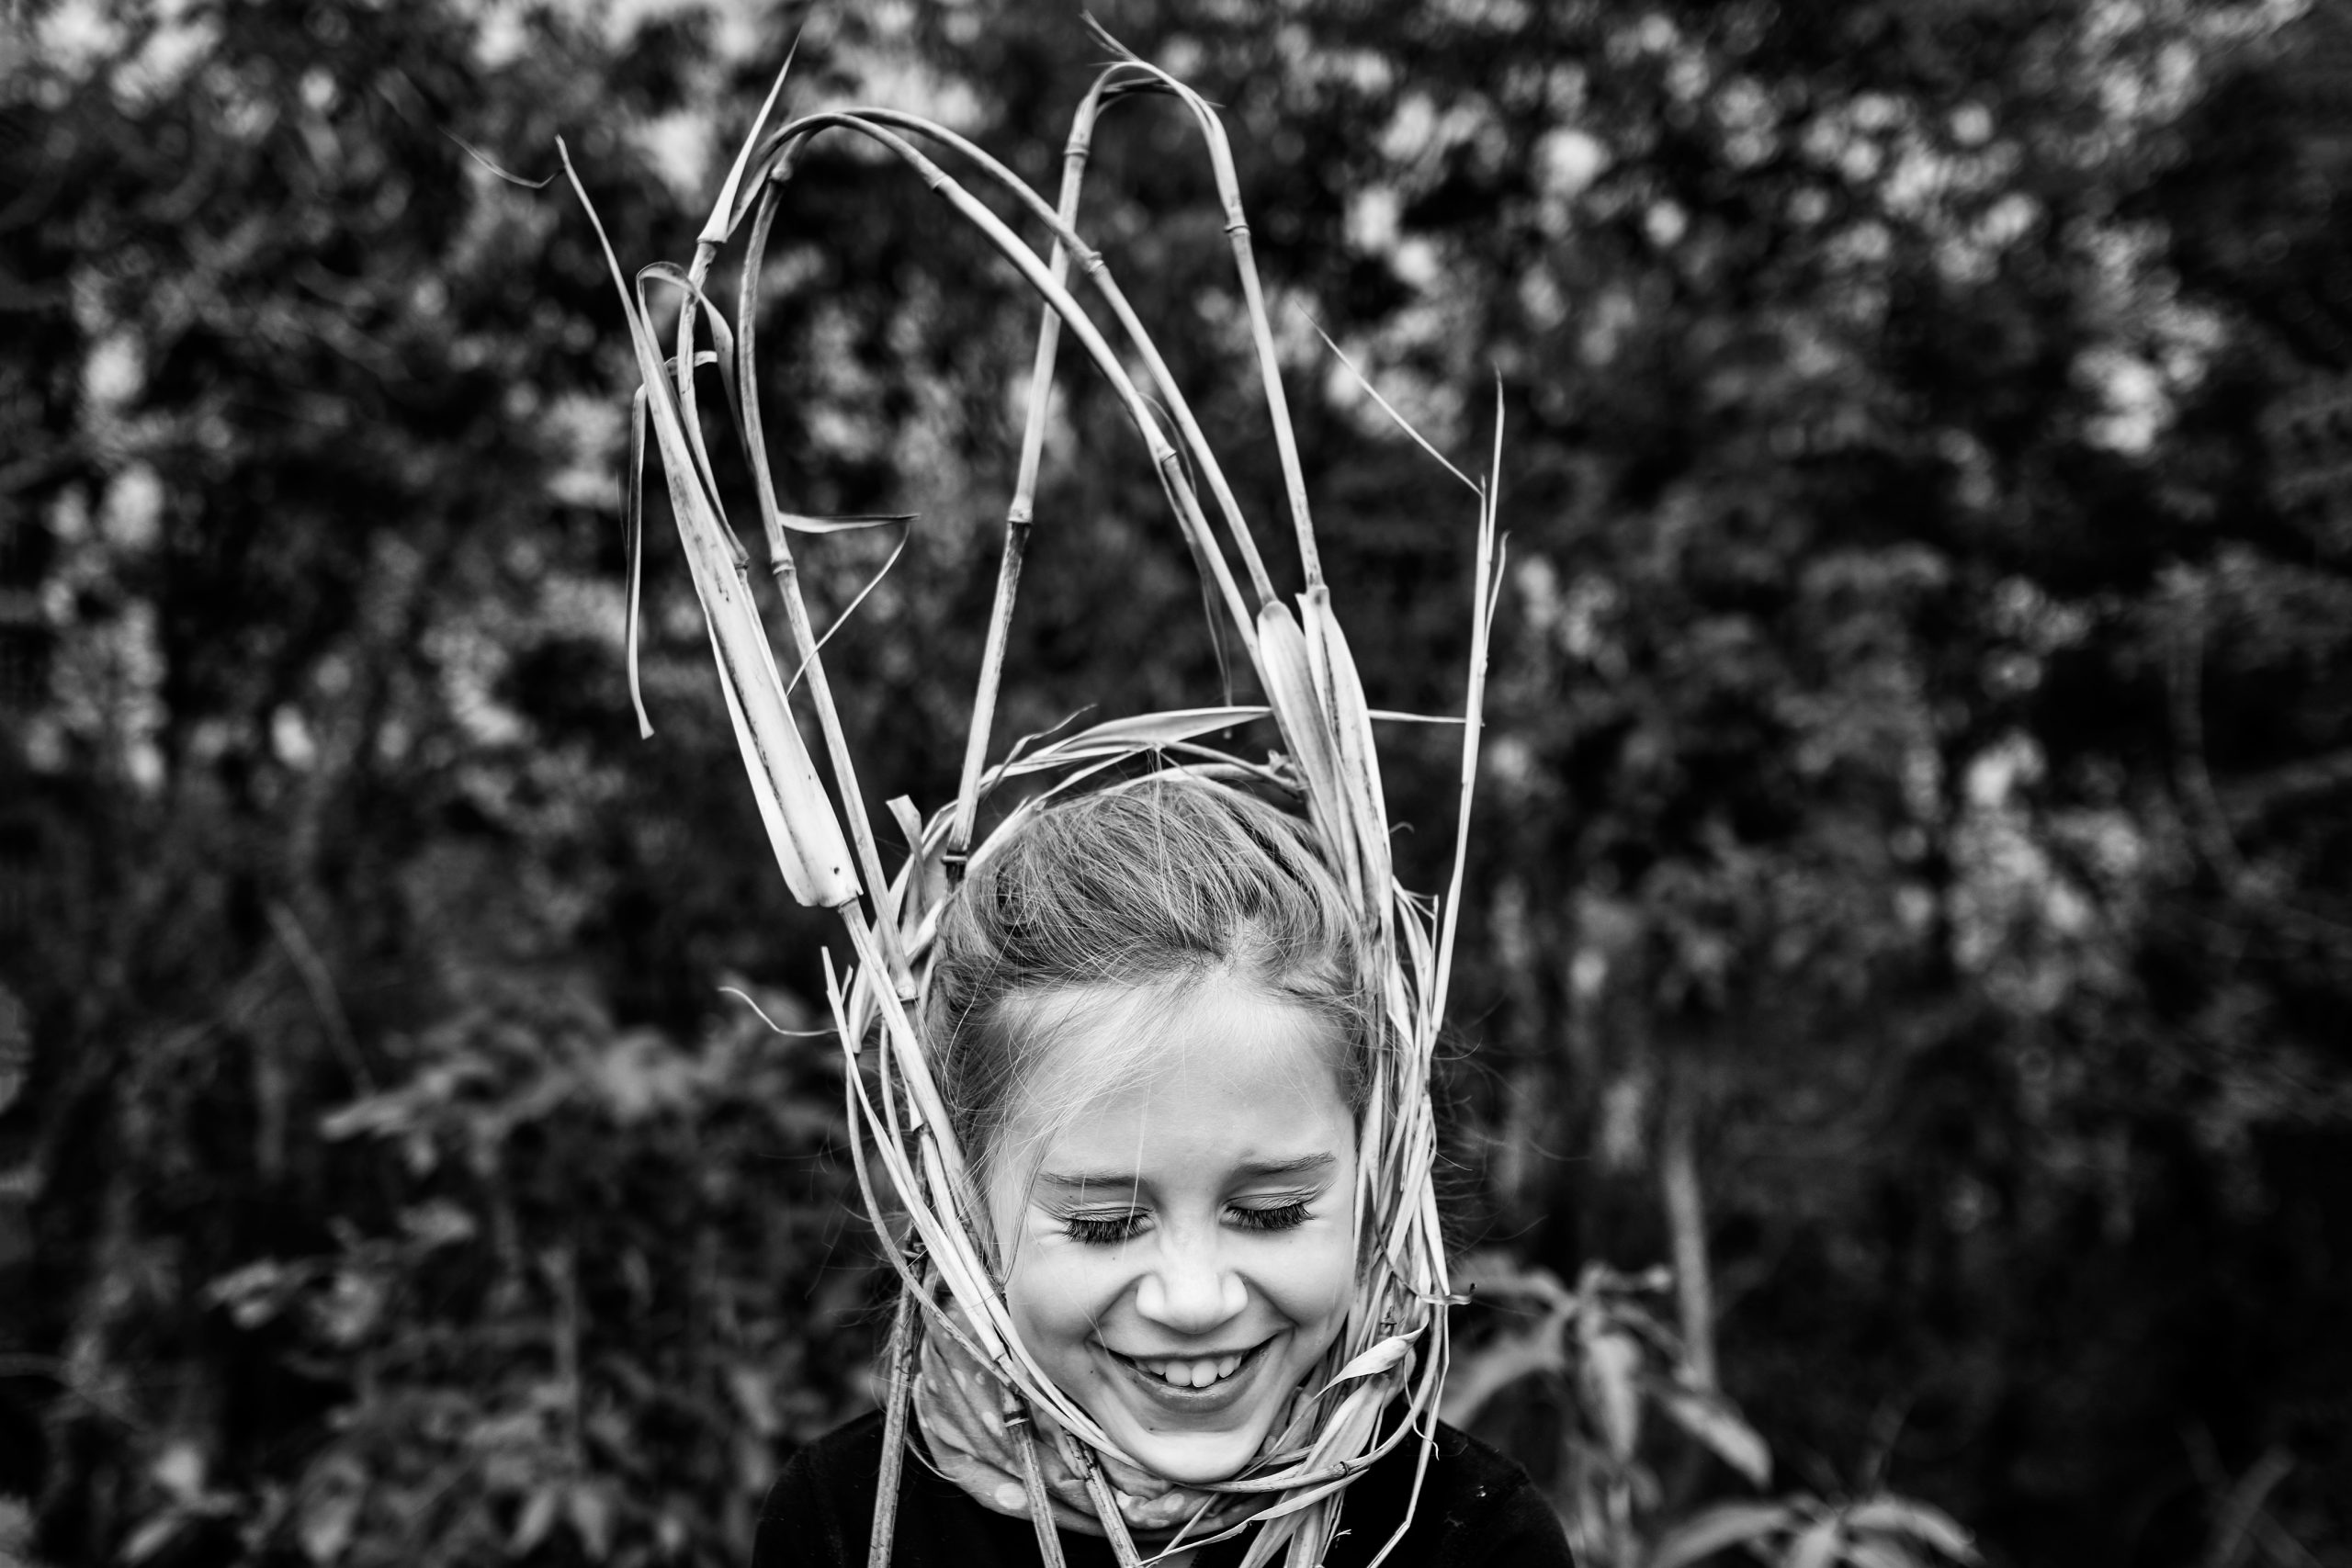 Young girl wrapped up in thick straw laughing